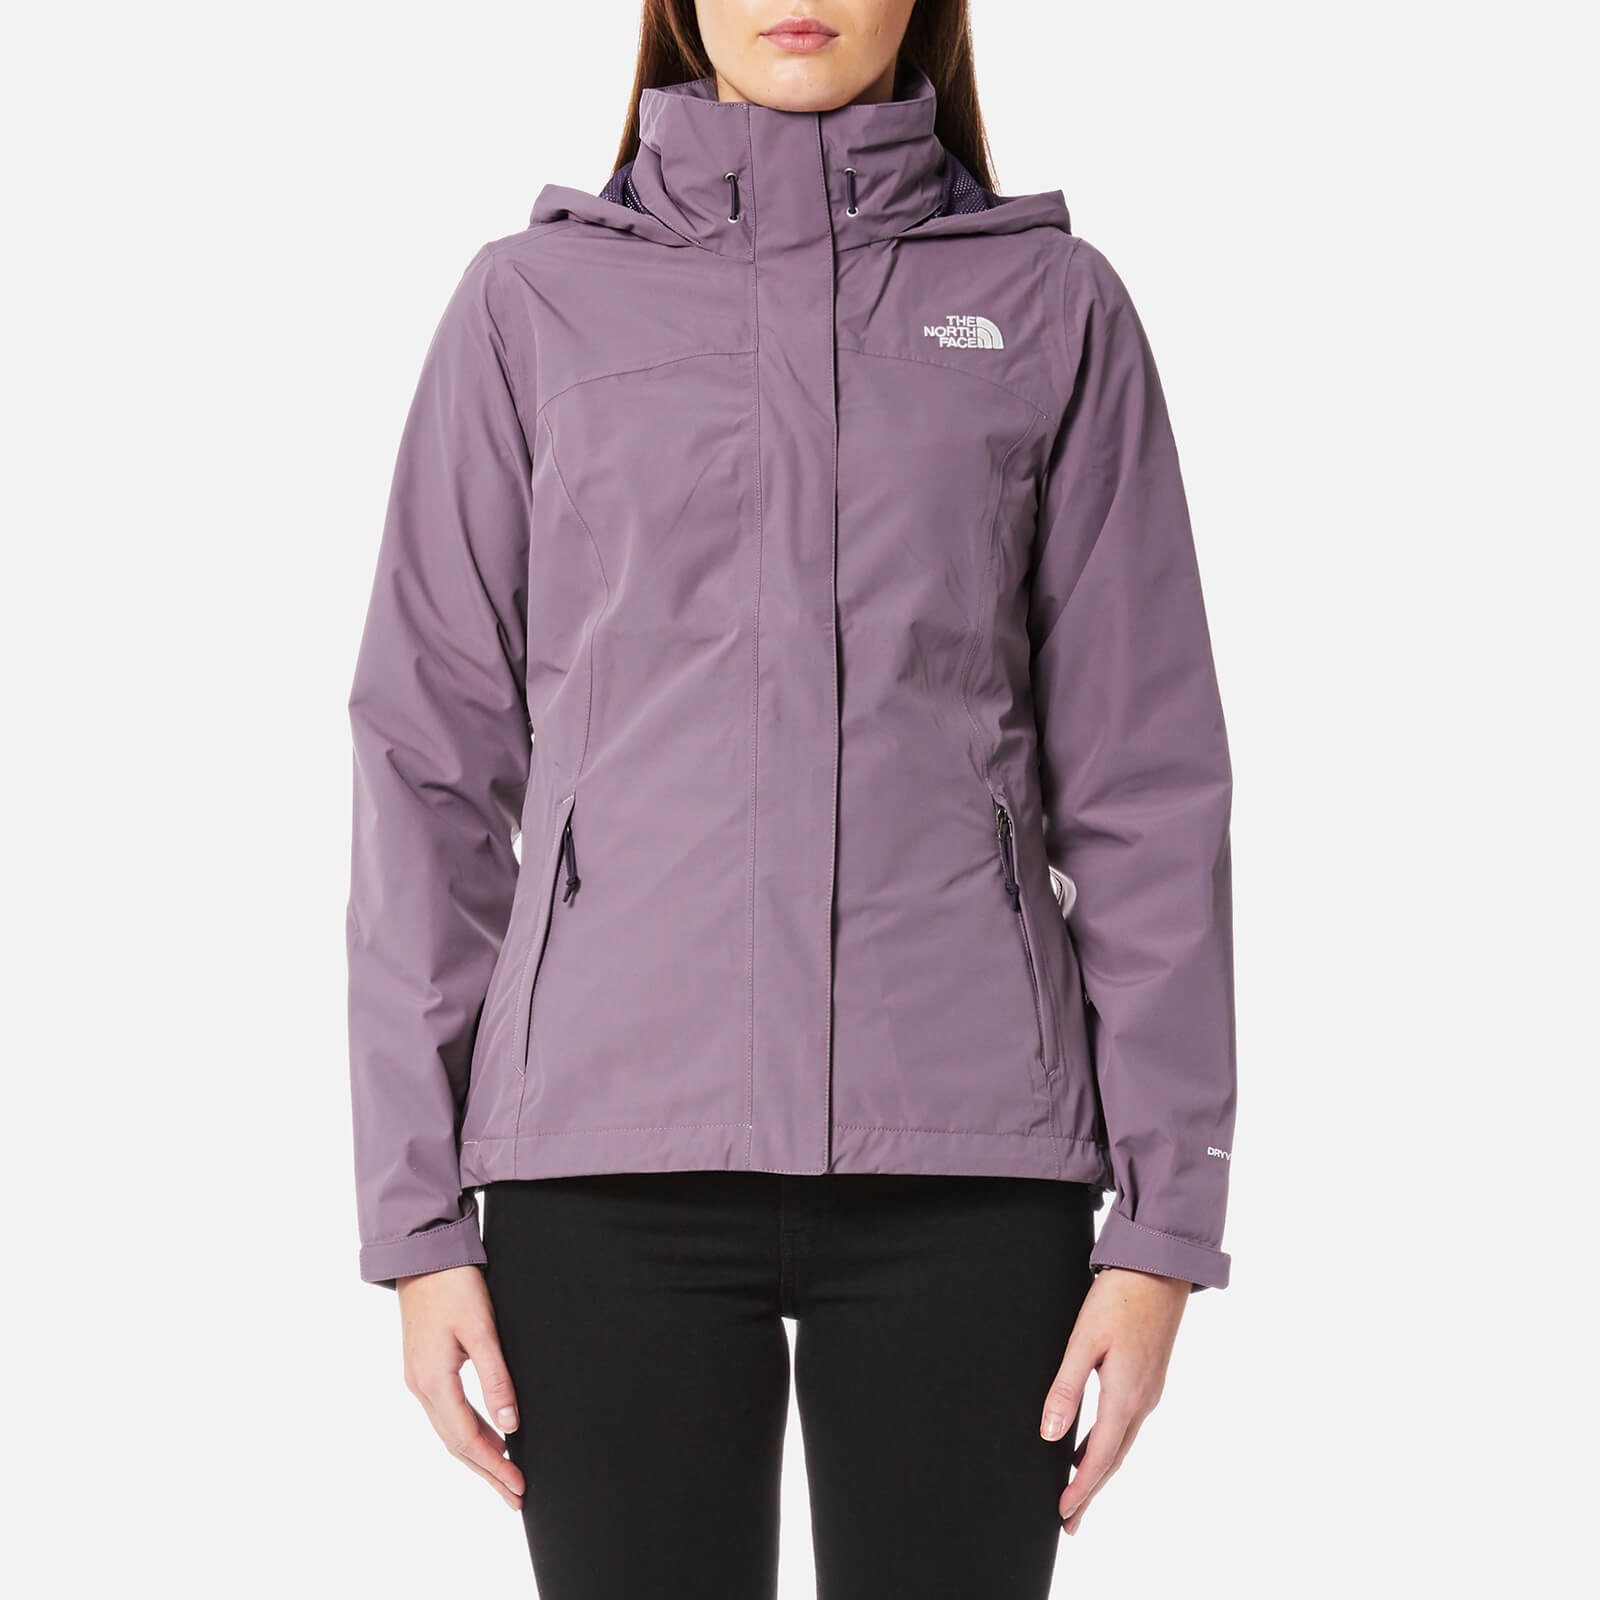 8101dab9fb8d The North Face Women s Sangro Jacket - Black Plum Womens Clothing ...